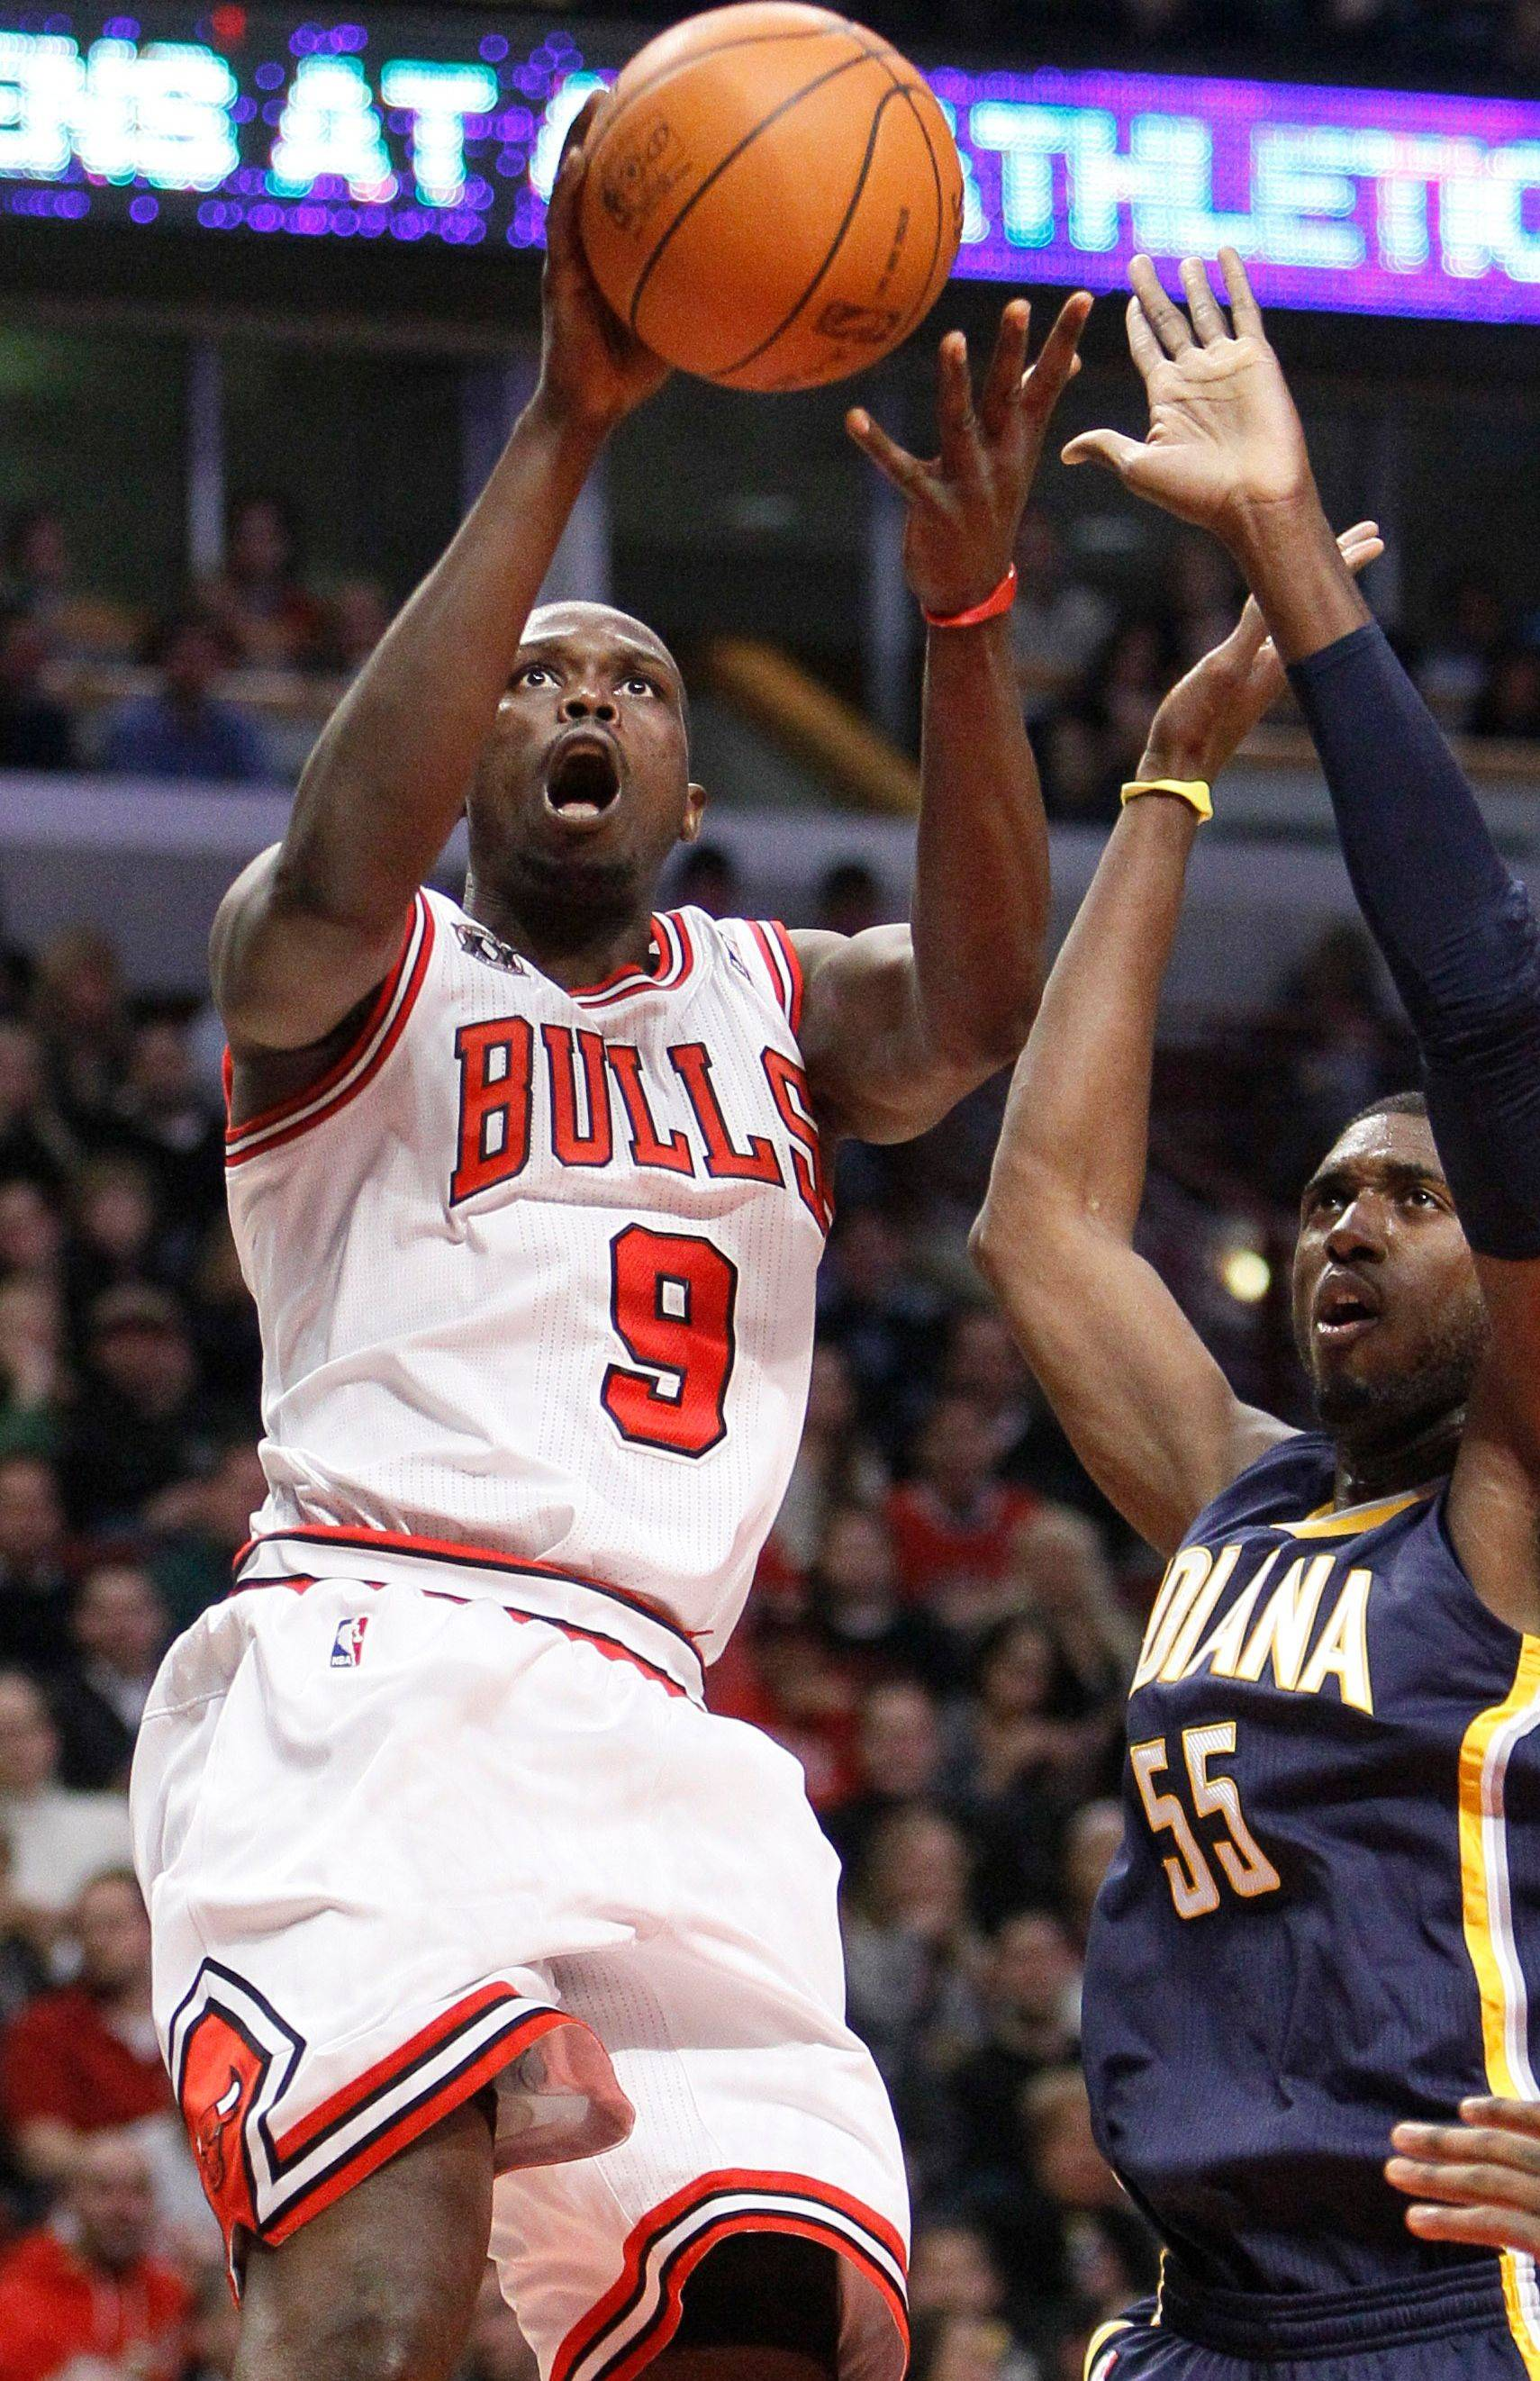 Chicago Bulls small forward Luol Deng, left, drives to the basket past Indiana Pacers center Roy Hibbert during the second half of an NBA basketball game Monday, Dec. 13, 2010, in Chicago. The Bulls won 92-73.